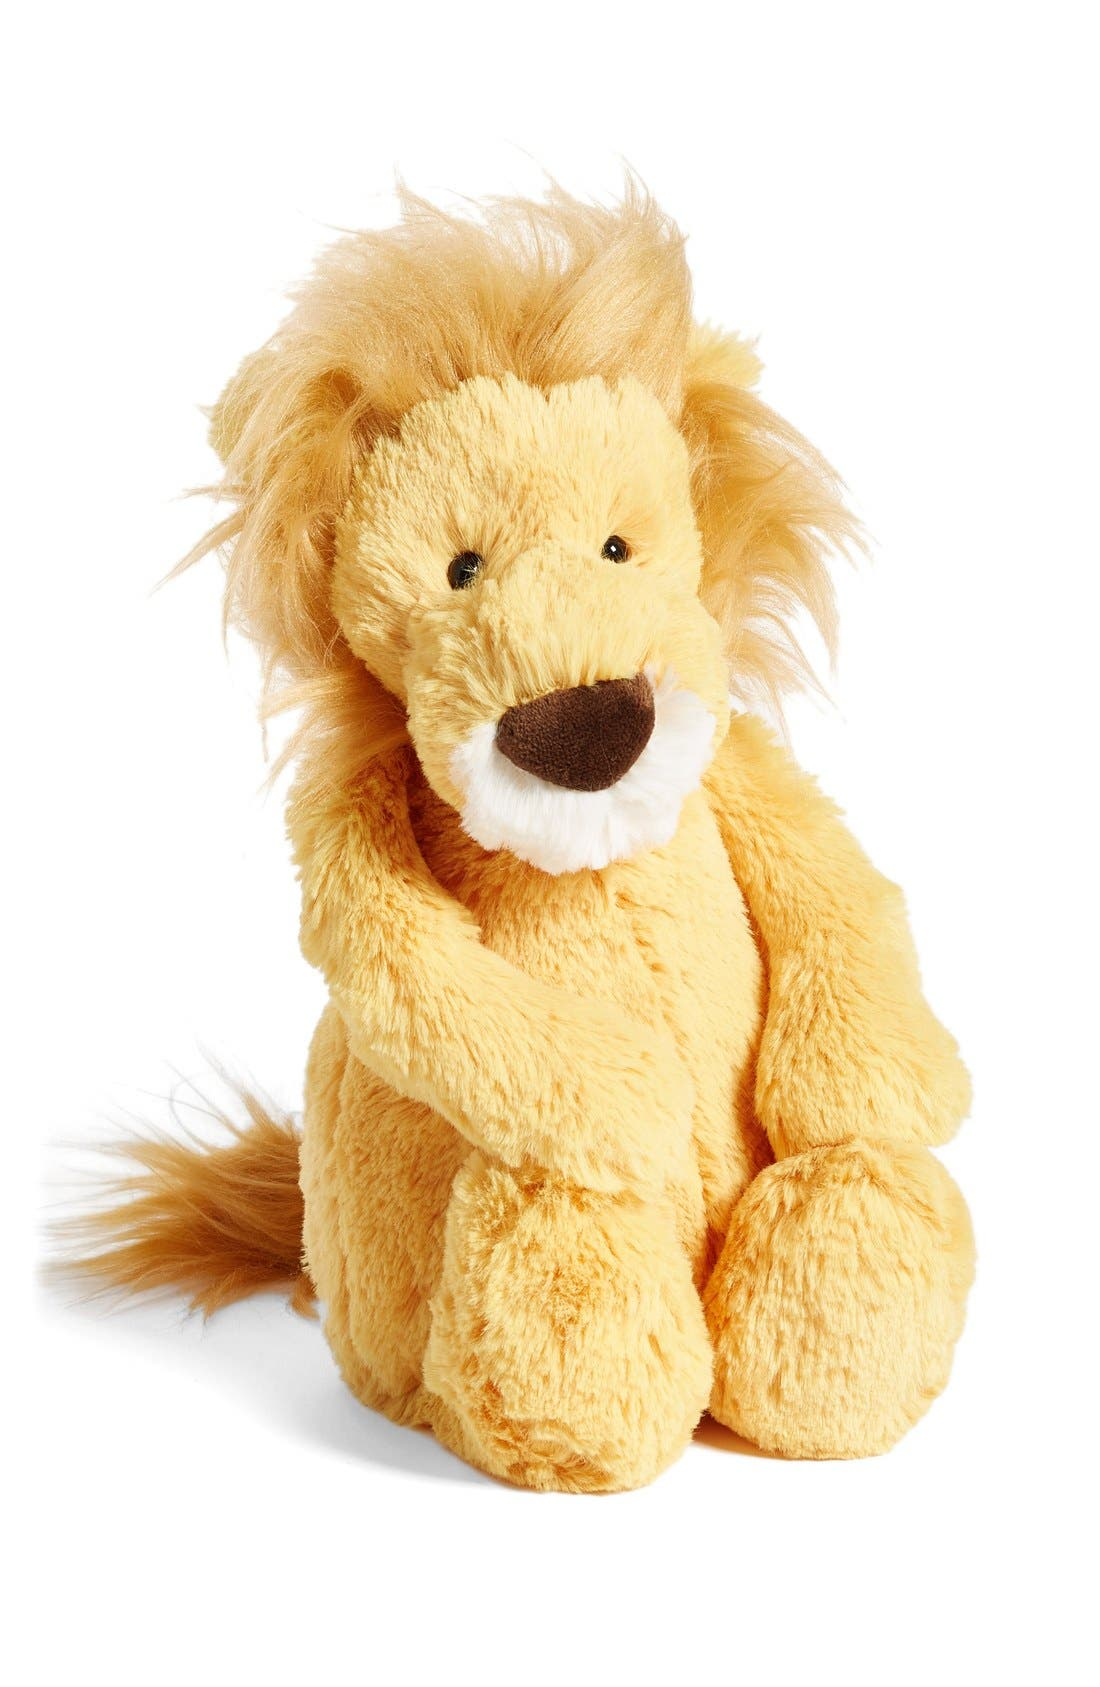 Jellycat 'Medium Bashful Lion' Stuffed Animal